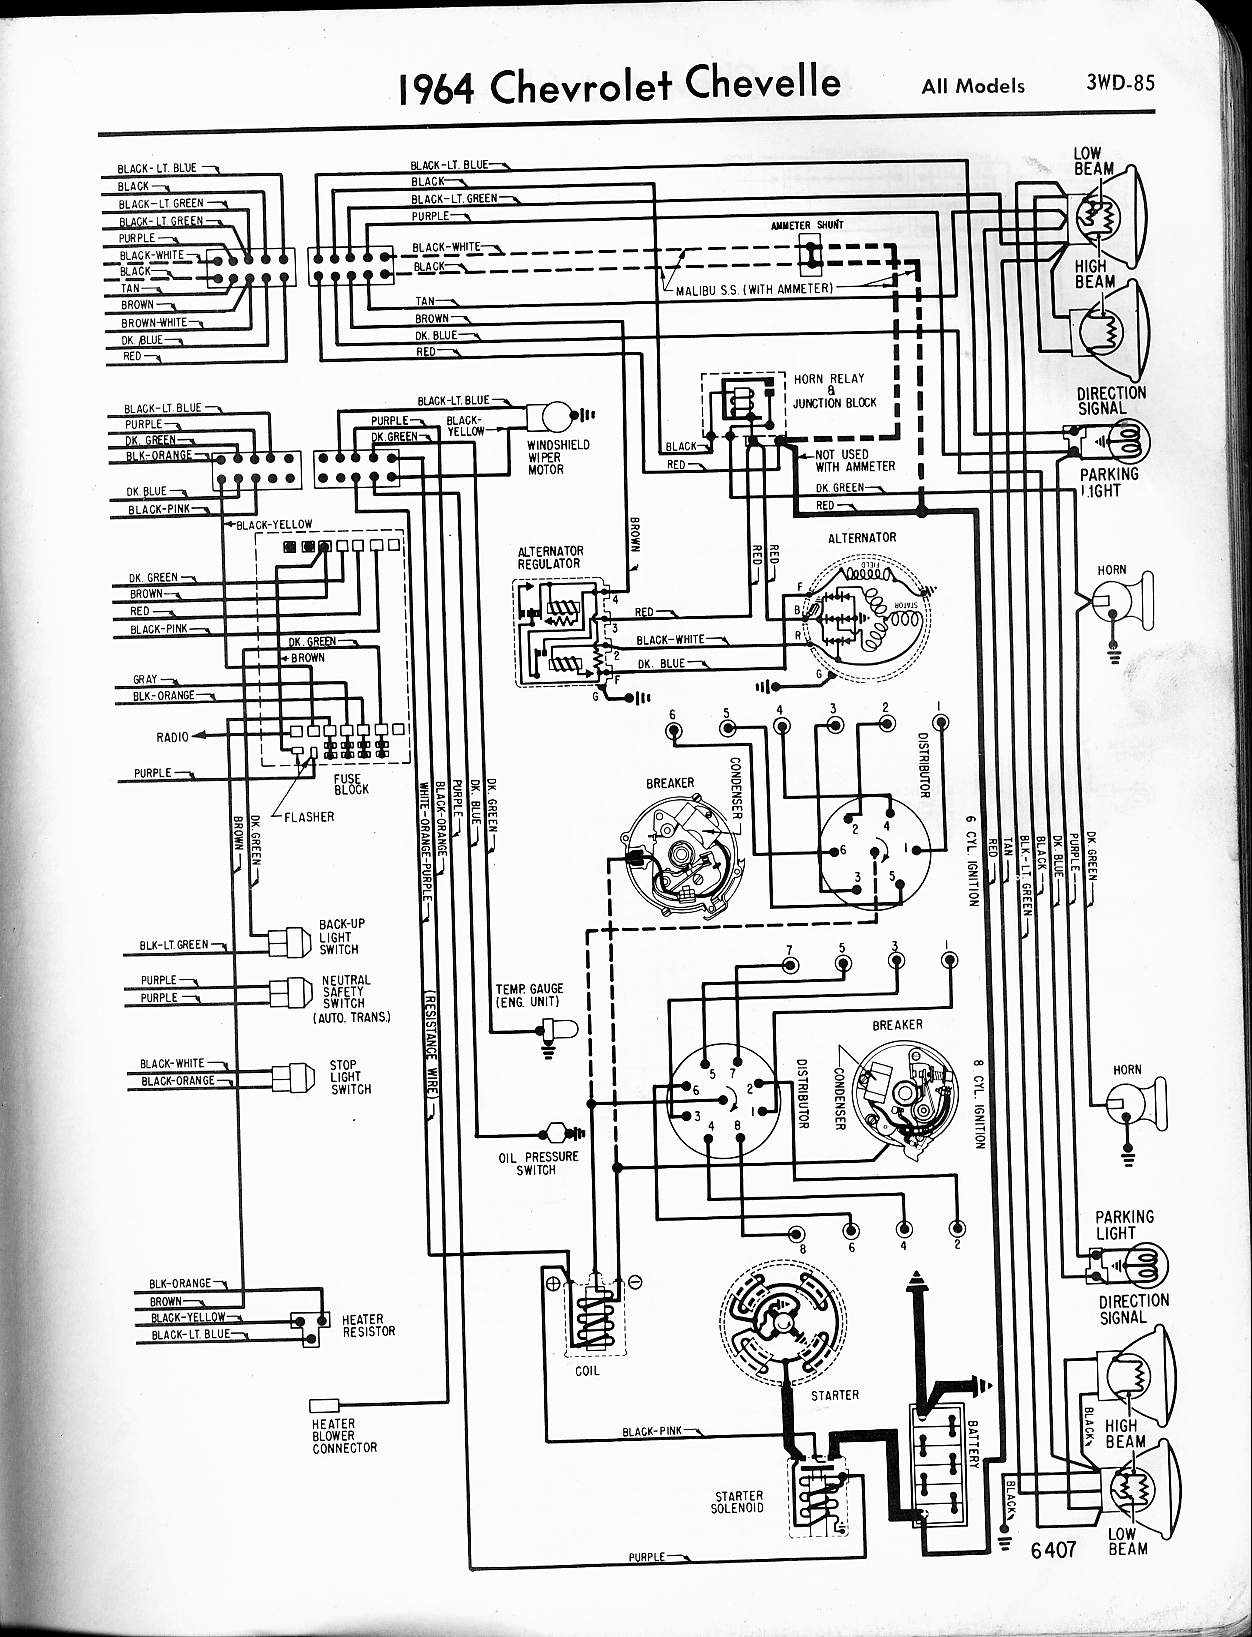 Chevy Column Wiring Schematic List Of Circuit Diagram 1965 Chevelle Data Schema Rh Site De Joueurs Com